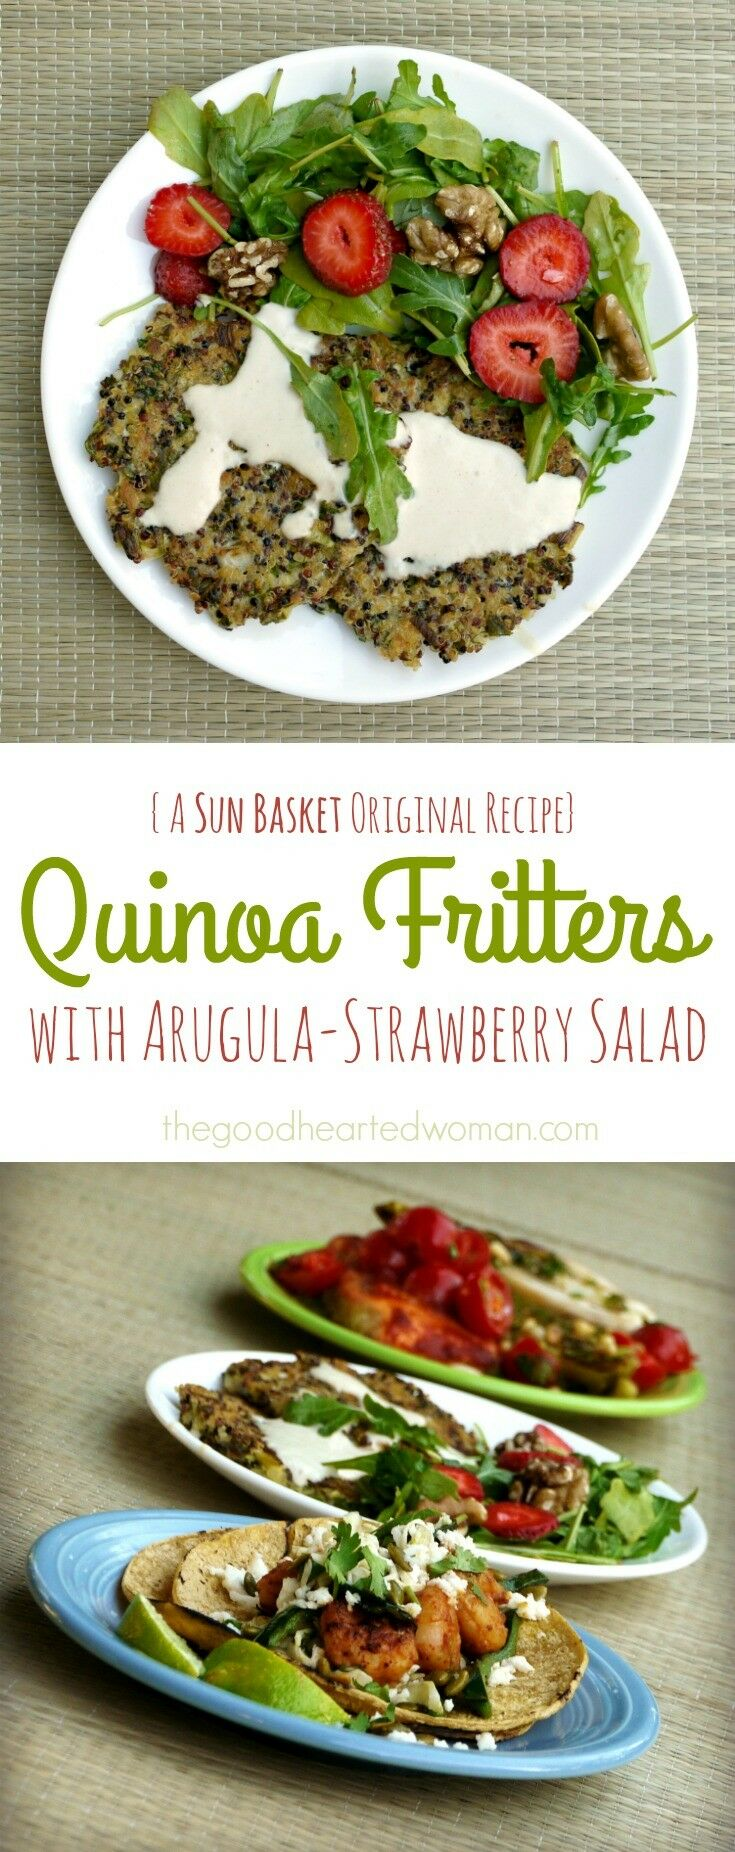 Quinoa Fritters were a huge hit with our family! Clean, Responsible, Healthy & Delicious: A Review of Sun Basket Organic Meal Delivery | The Good Hearted Woman